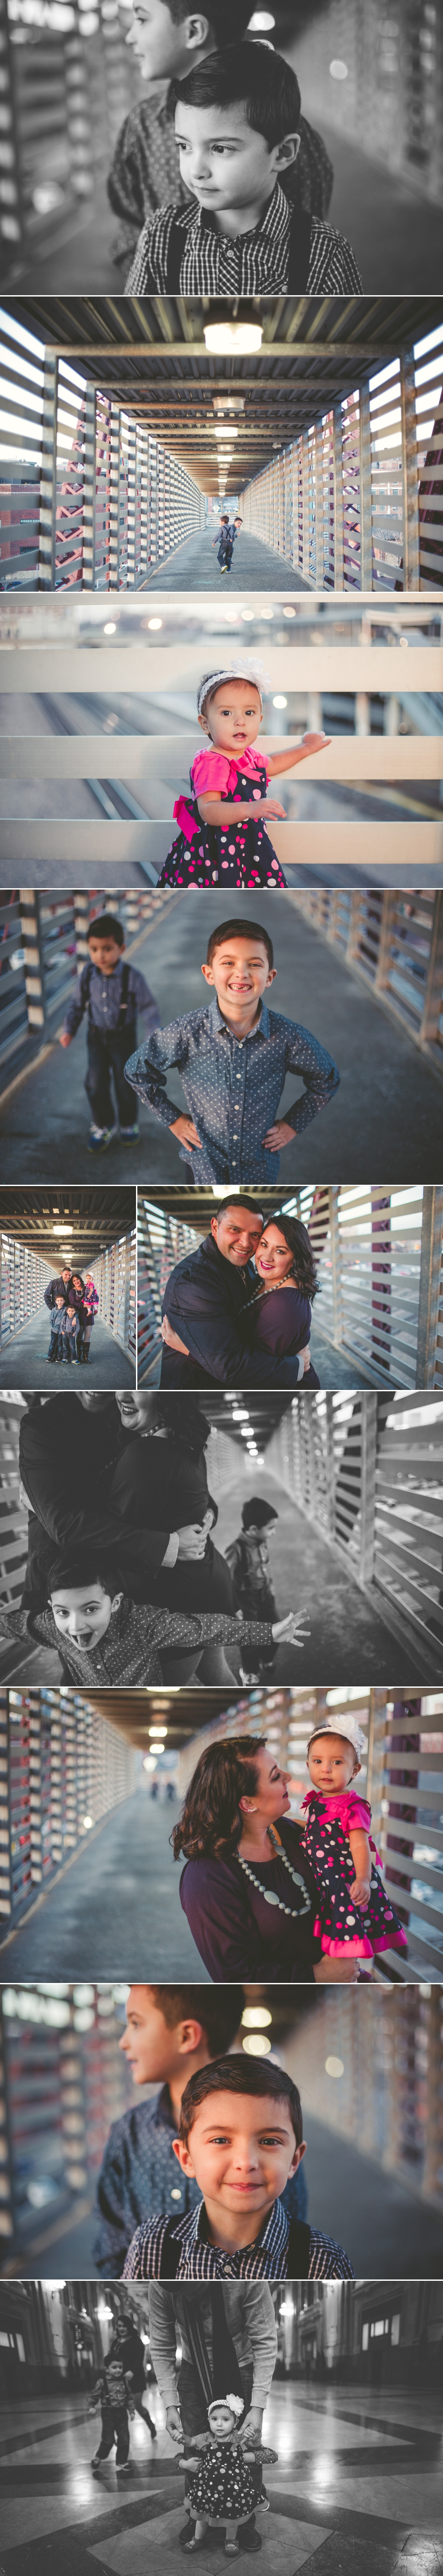 jason_domingues_photography_best_kansas_city_photographer_family_portrait_session_lifestyle_union_station.JPG